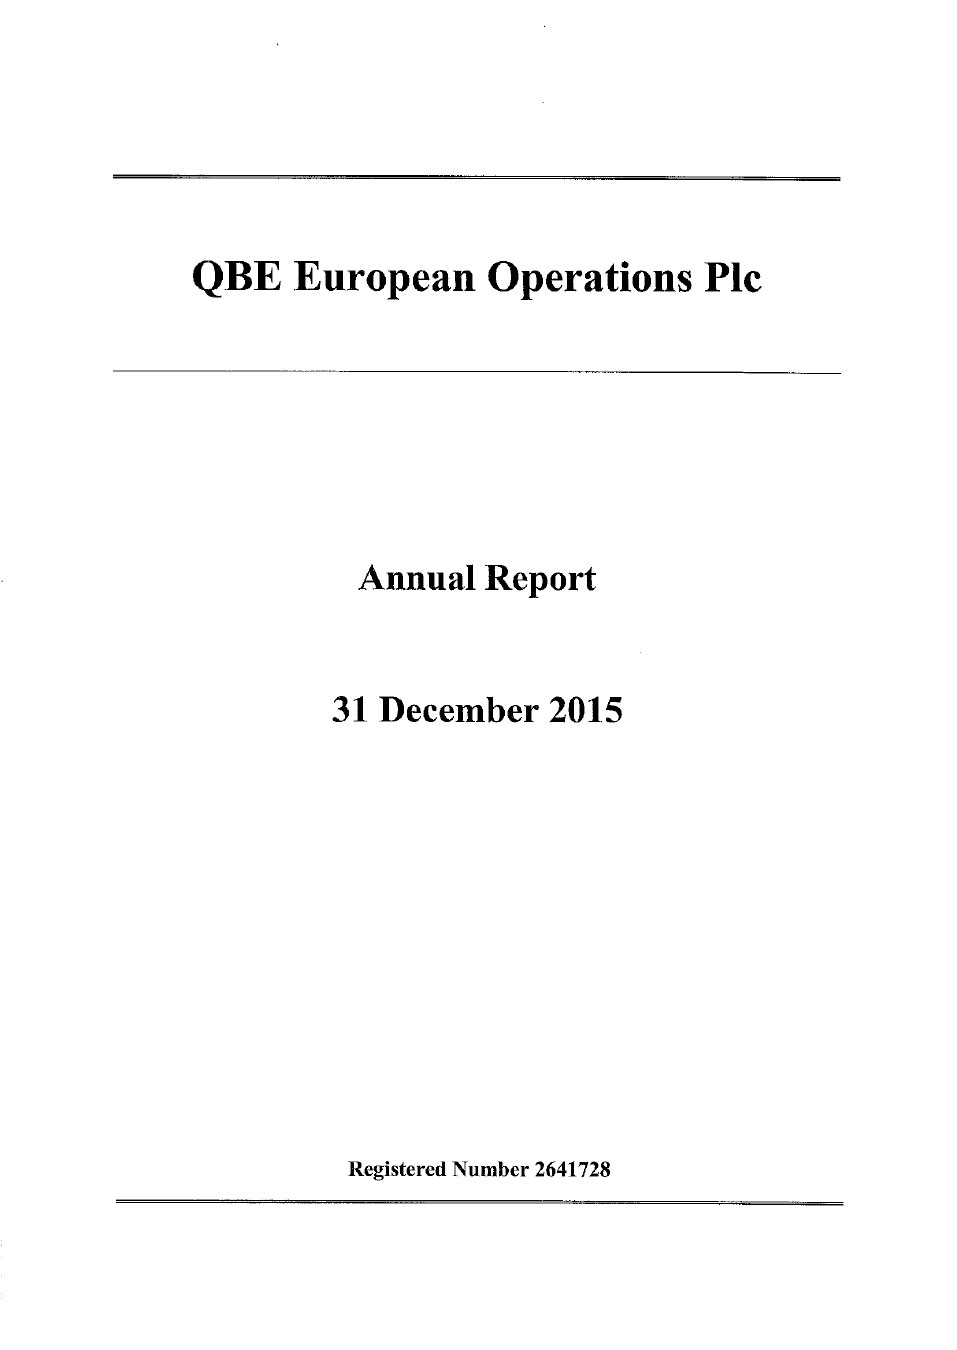 QBE European Operations Annual Report 2015